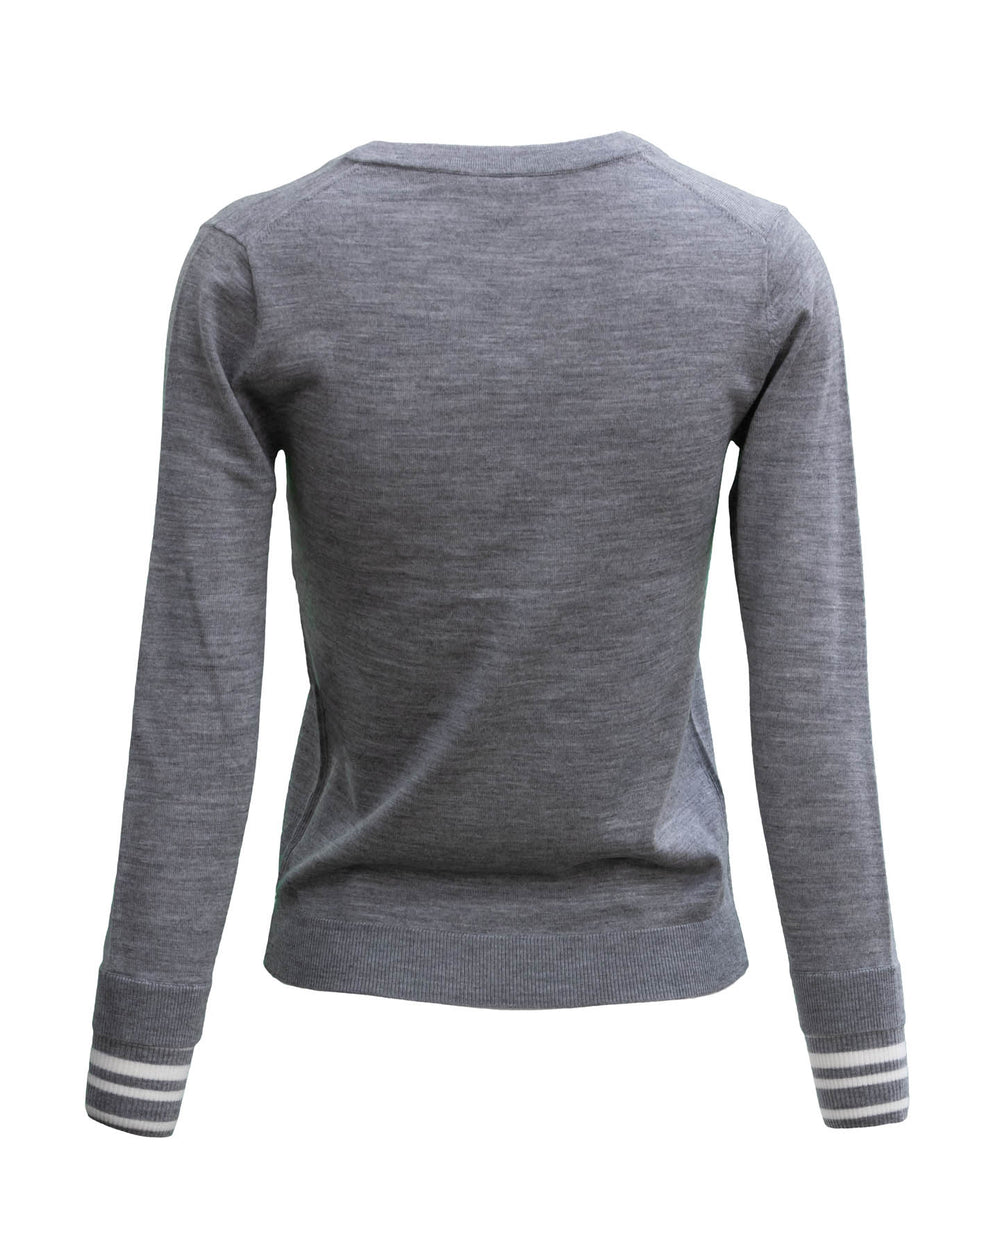 Avory V-Neck Sweater